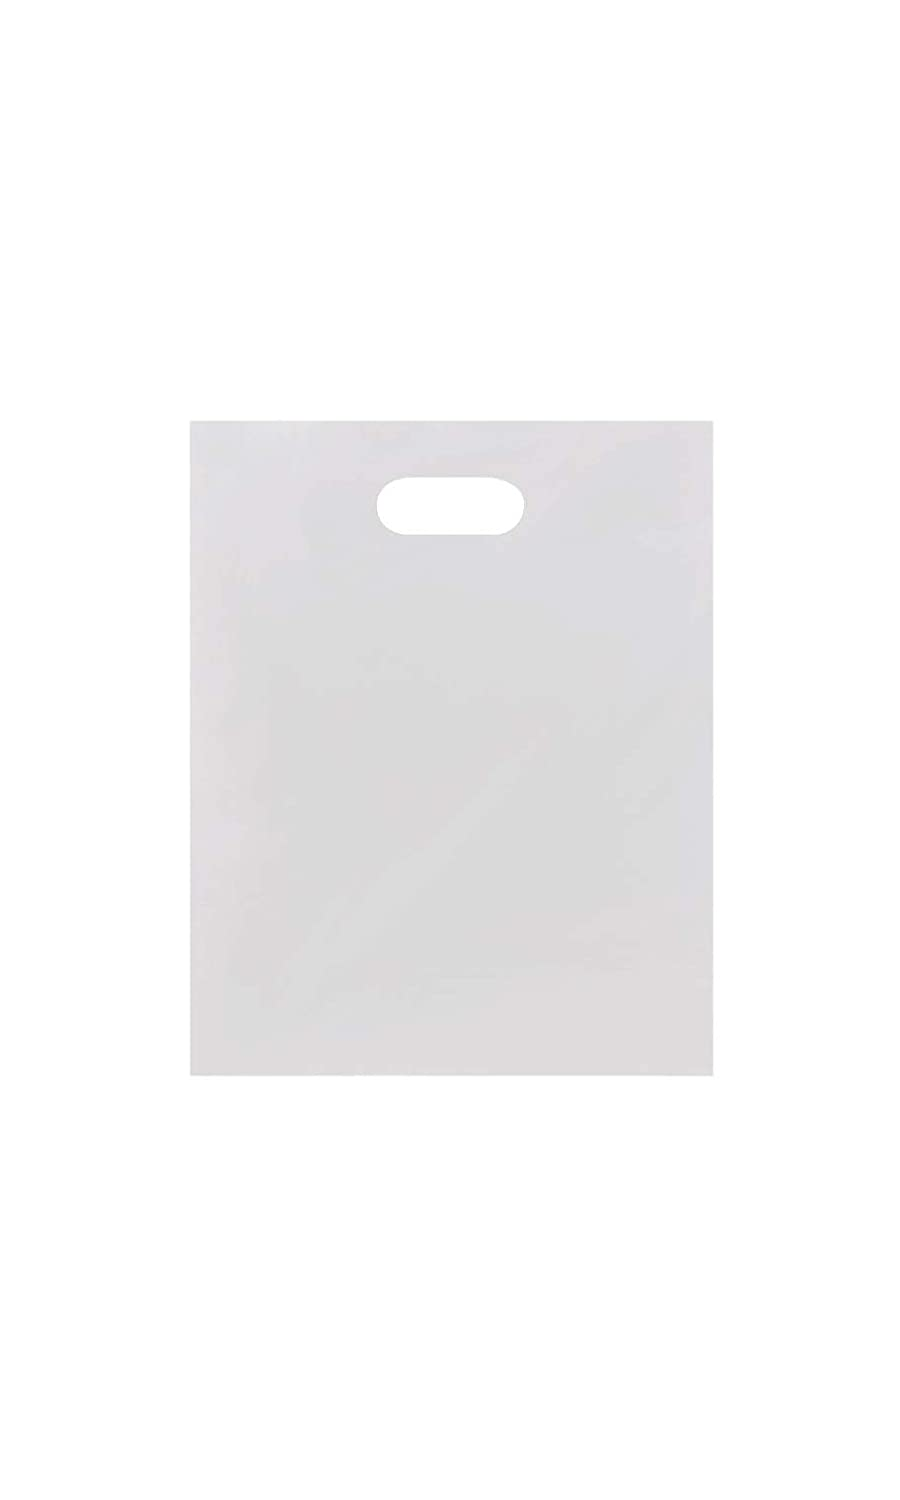 "9/""W x 12/""H SSWBasics Small Low Density White Merchandise Bags Case of 1000"